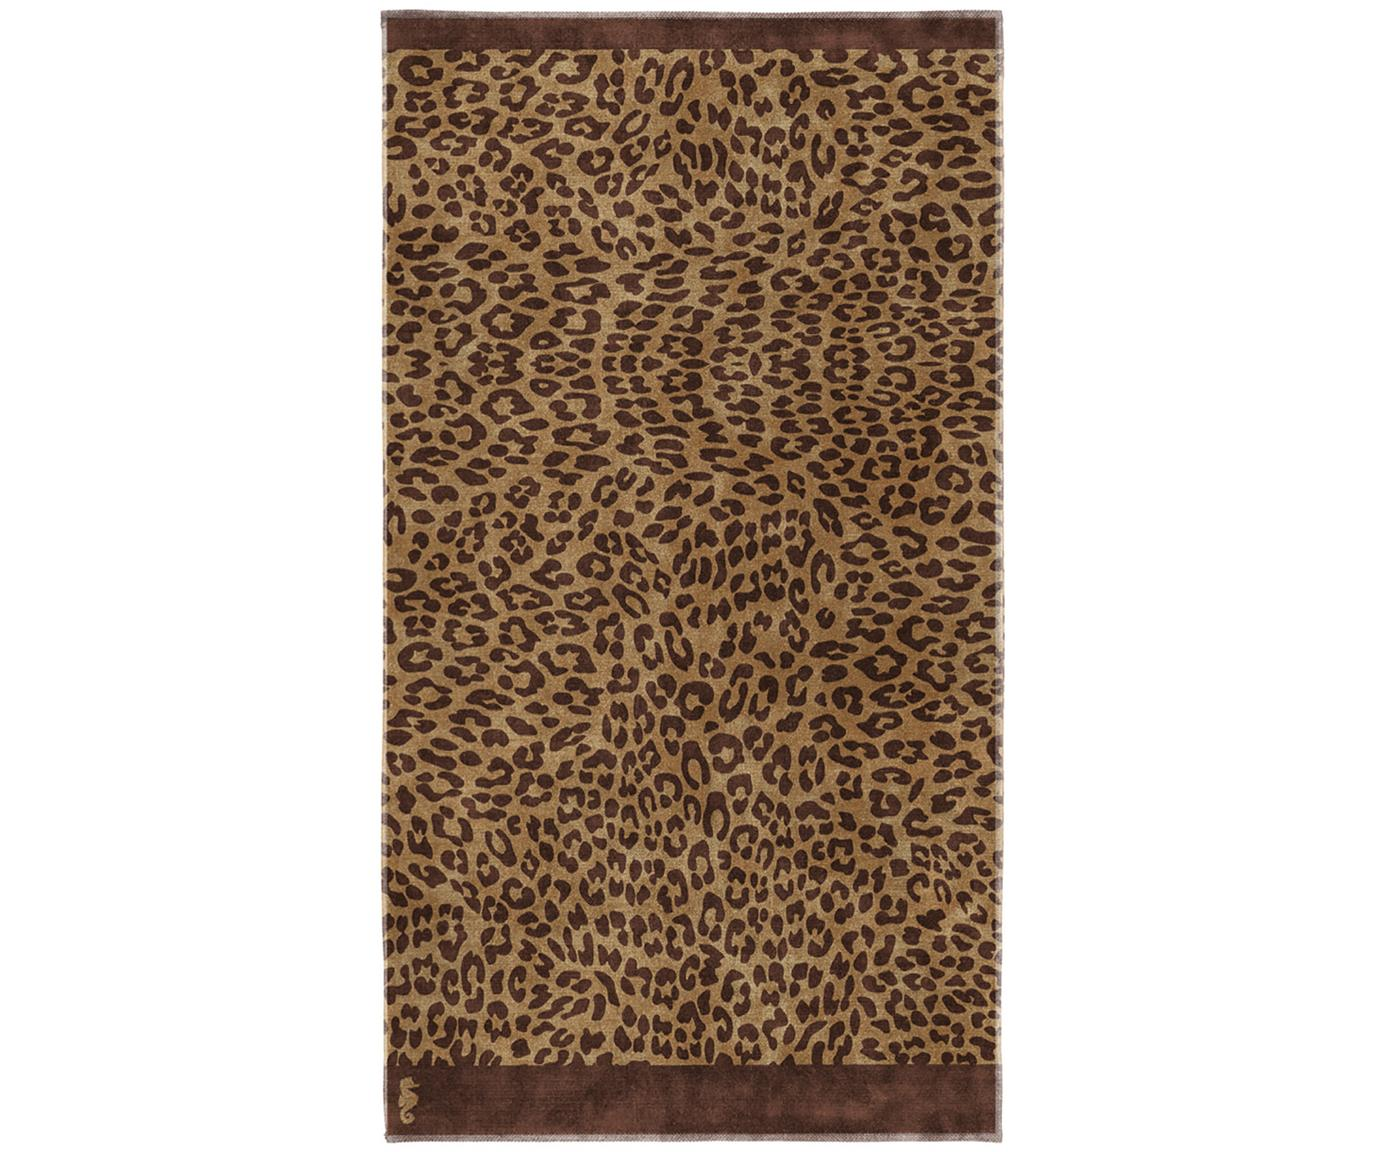 Toalla de playa Jaguar, Beige, marrón, An 100 x L 180 cm